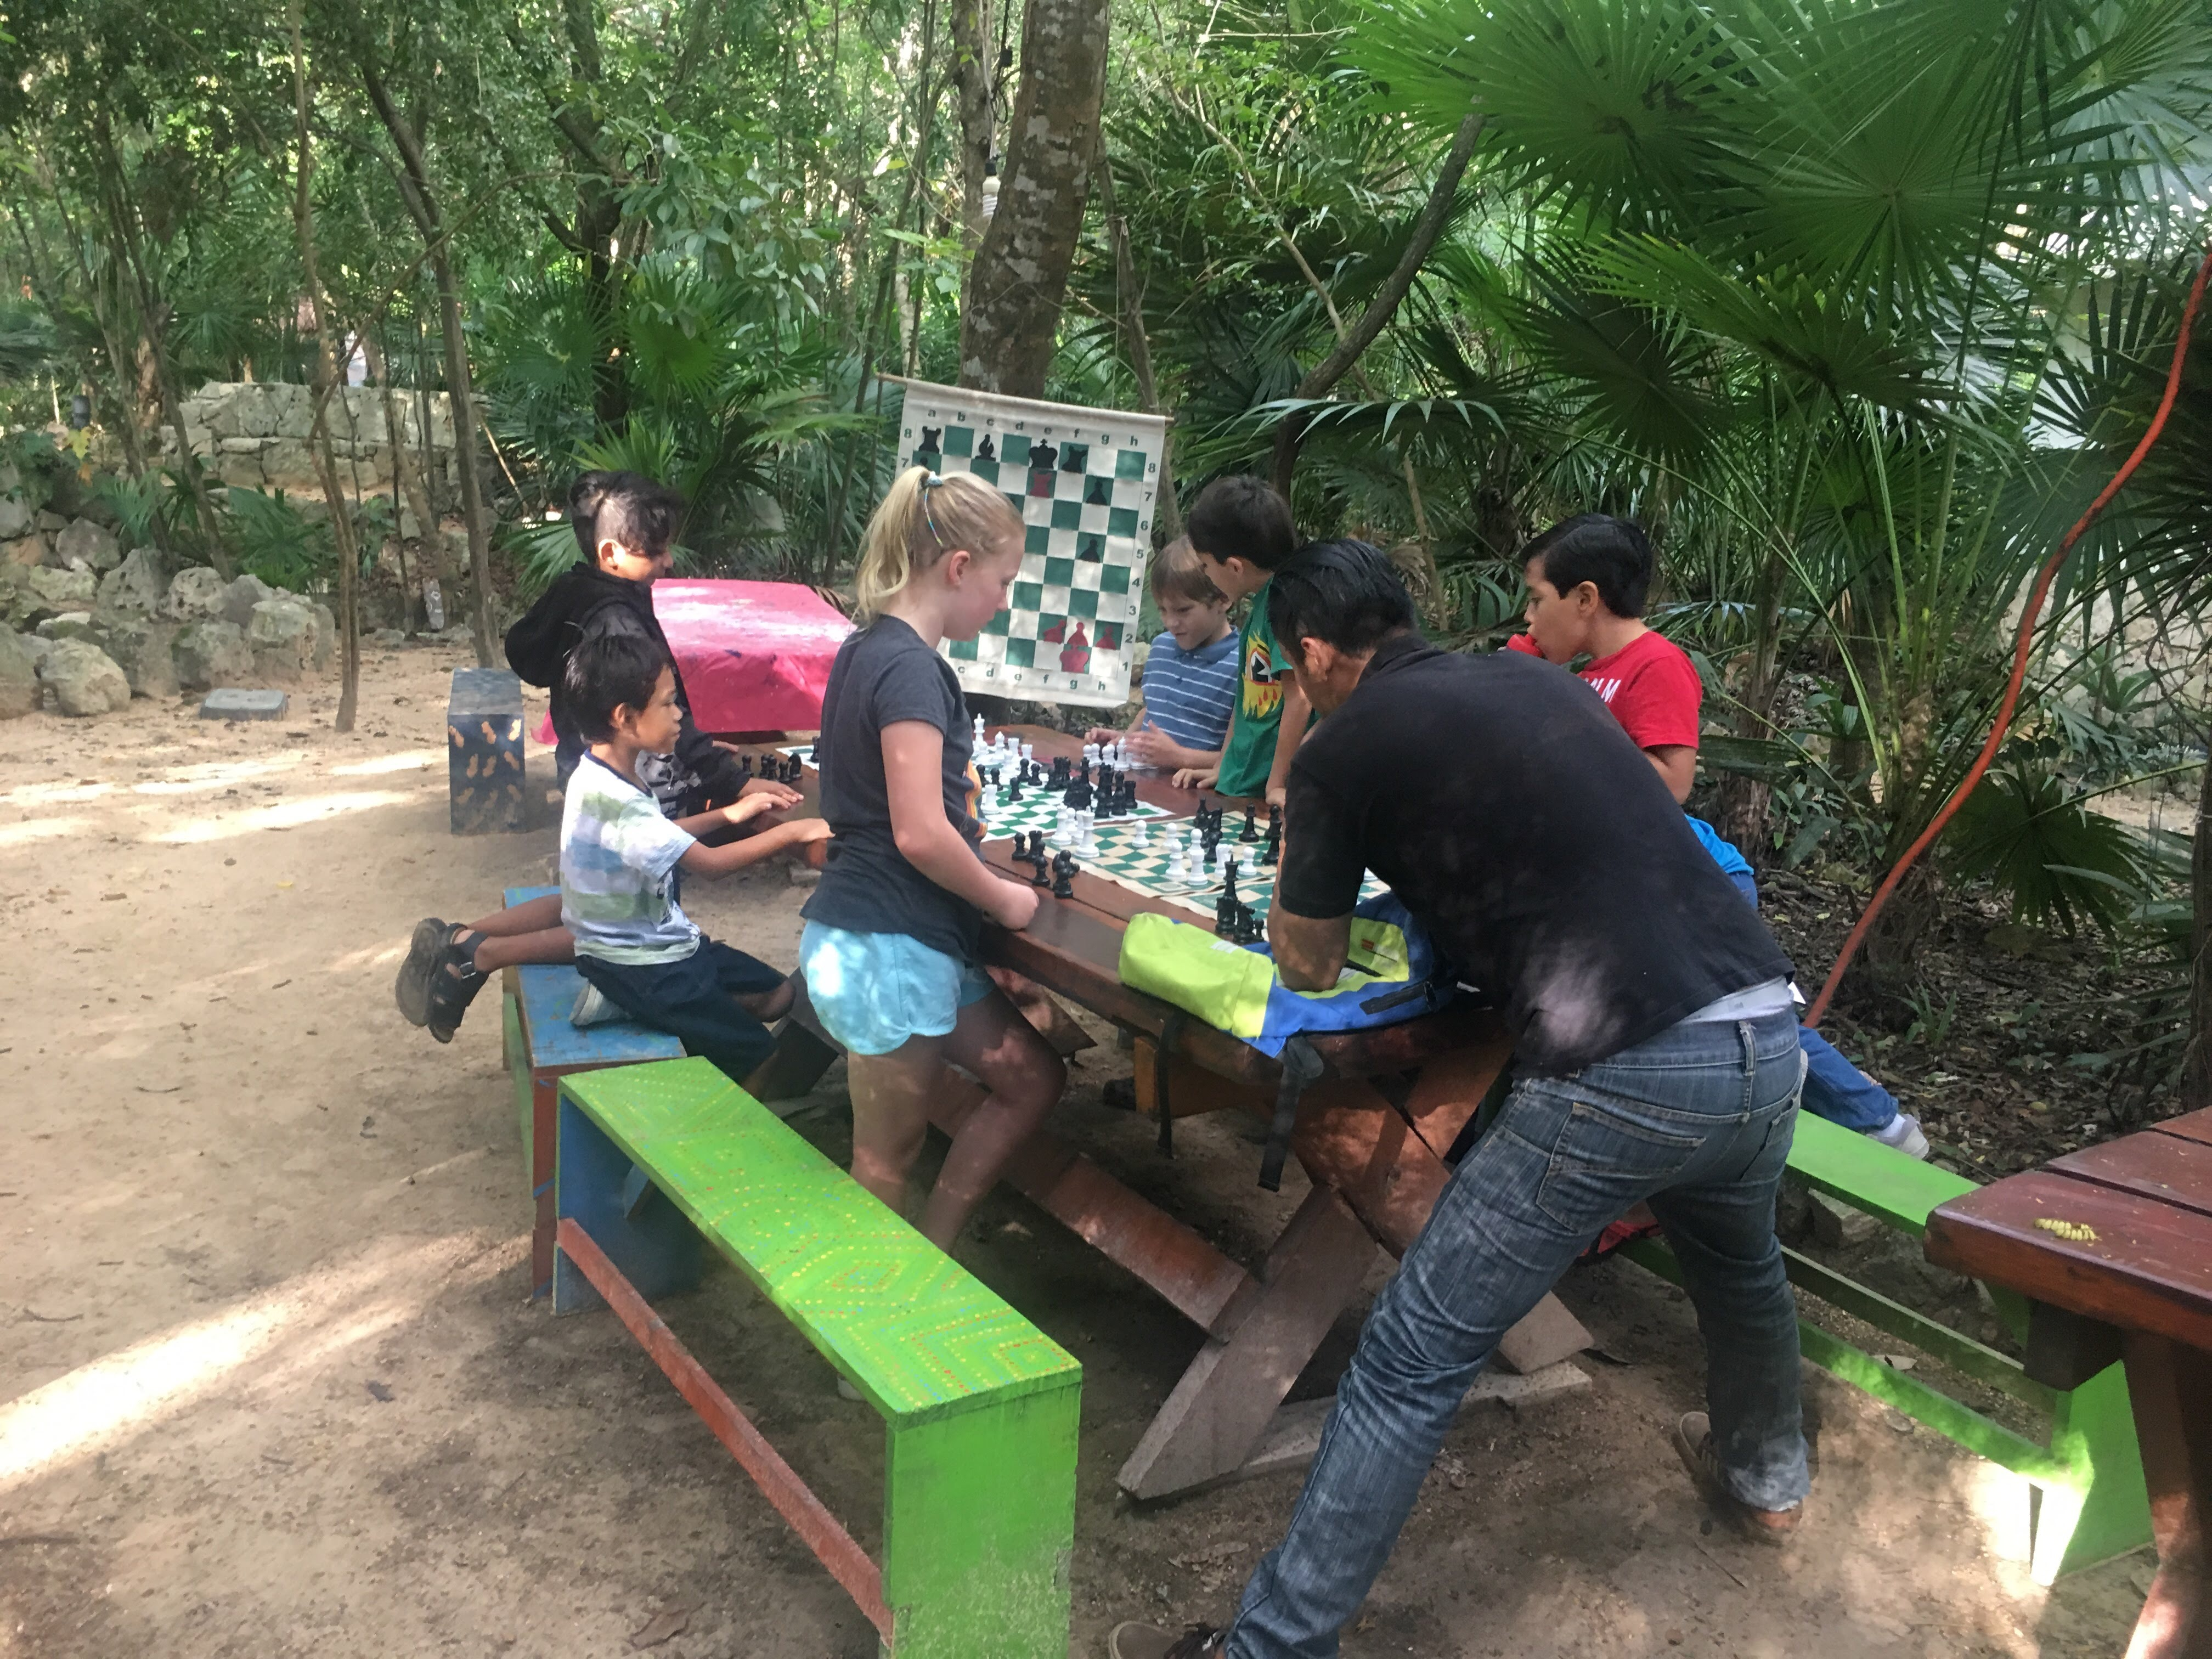 playing chess at park day